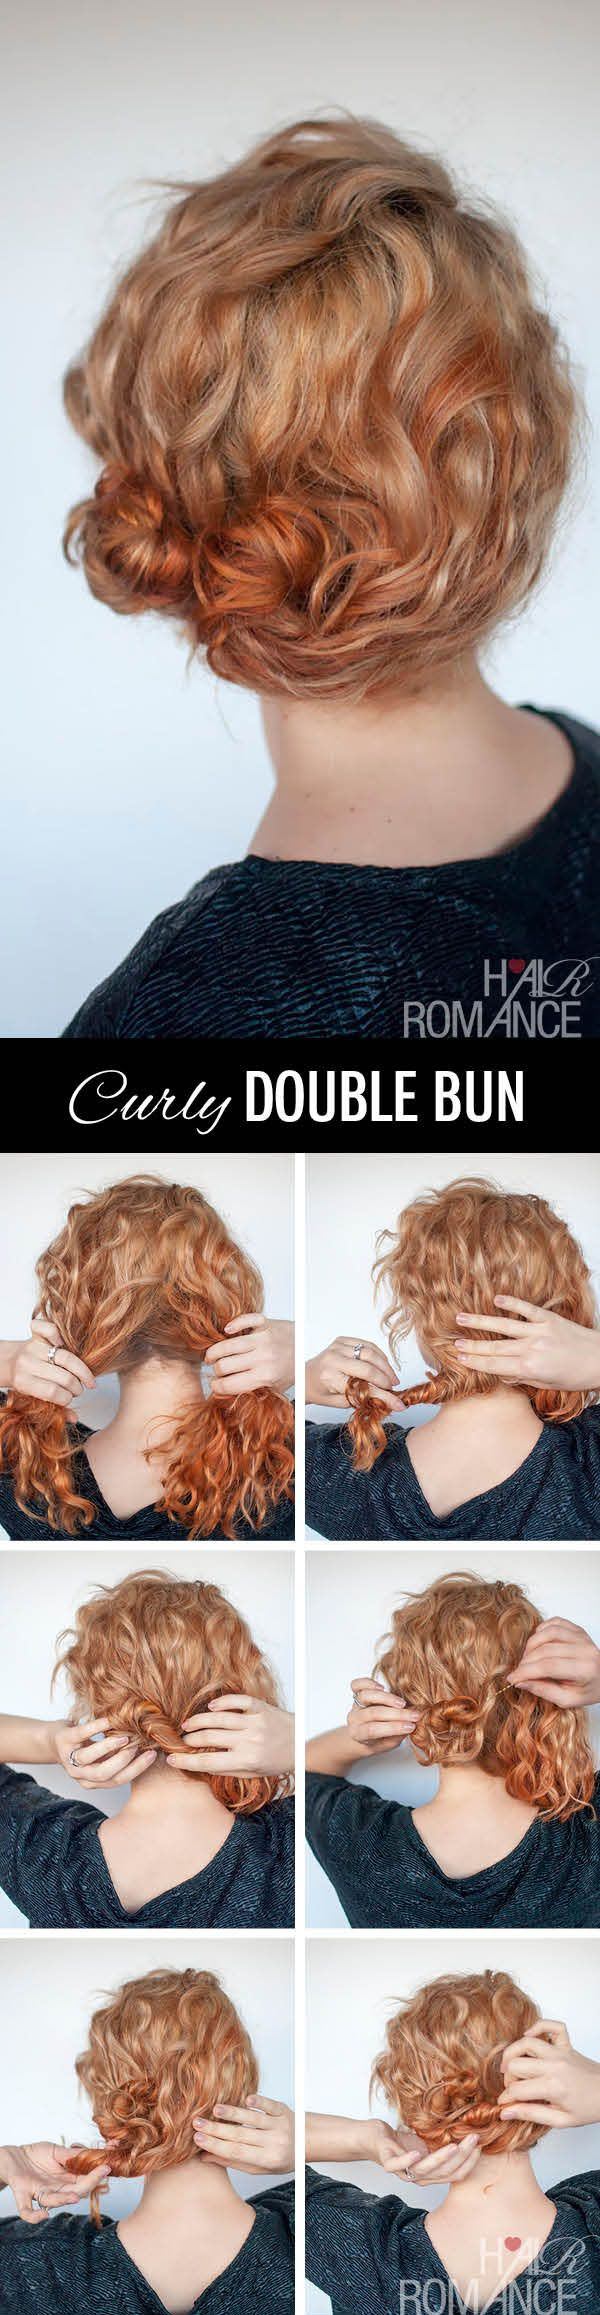 Cute one for curly hair....